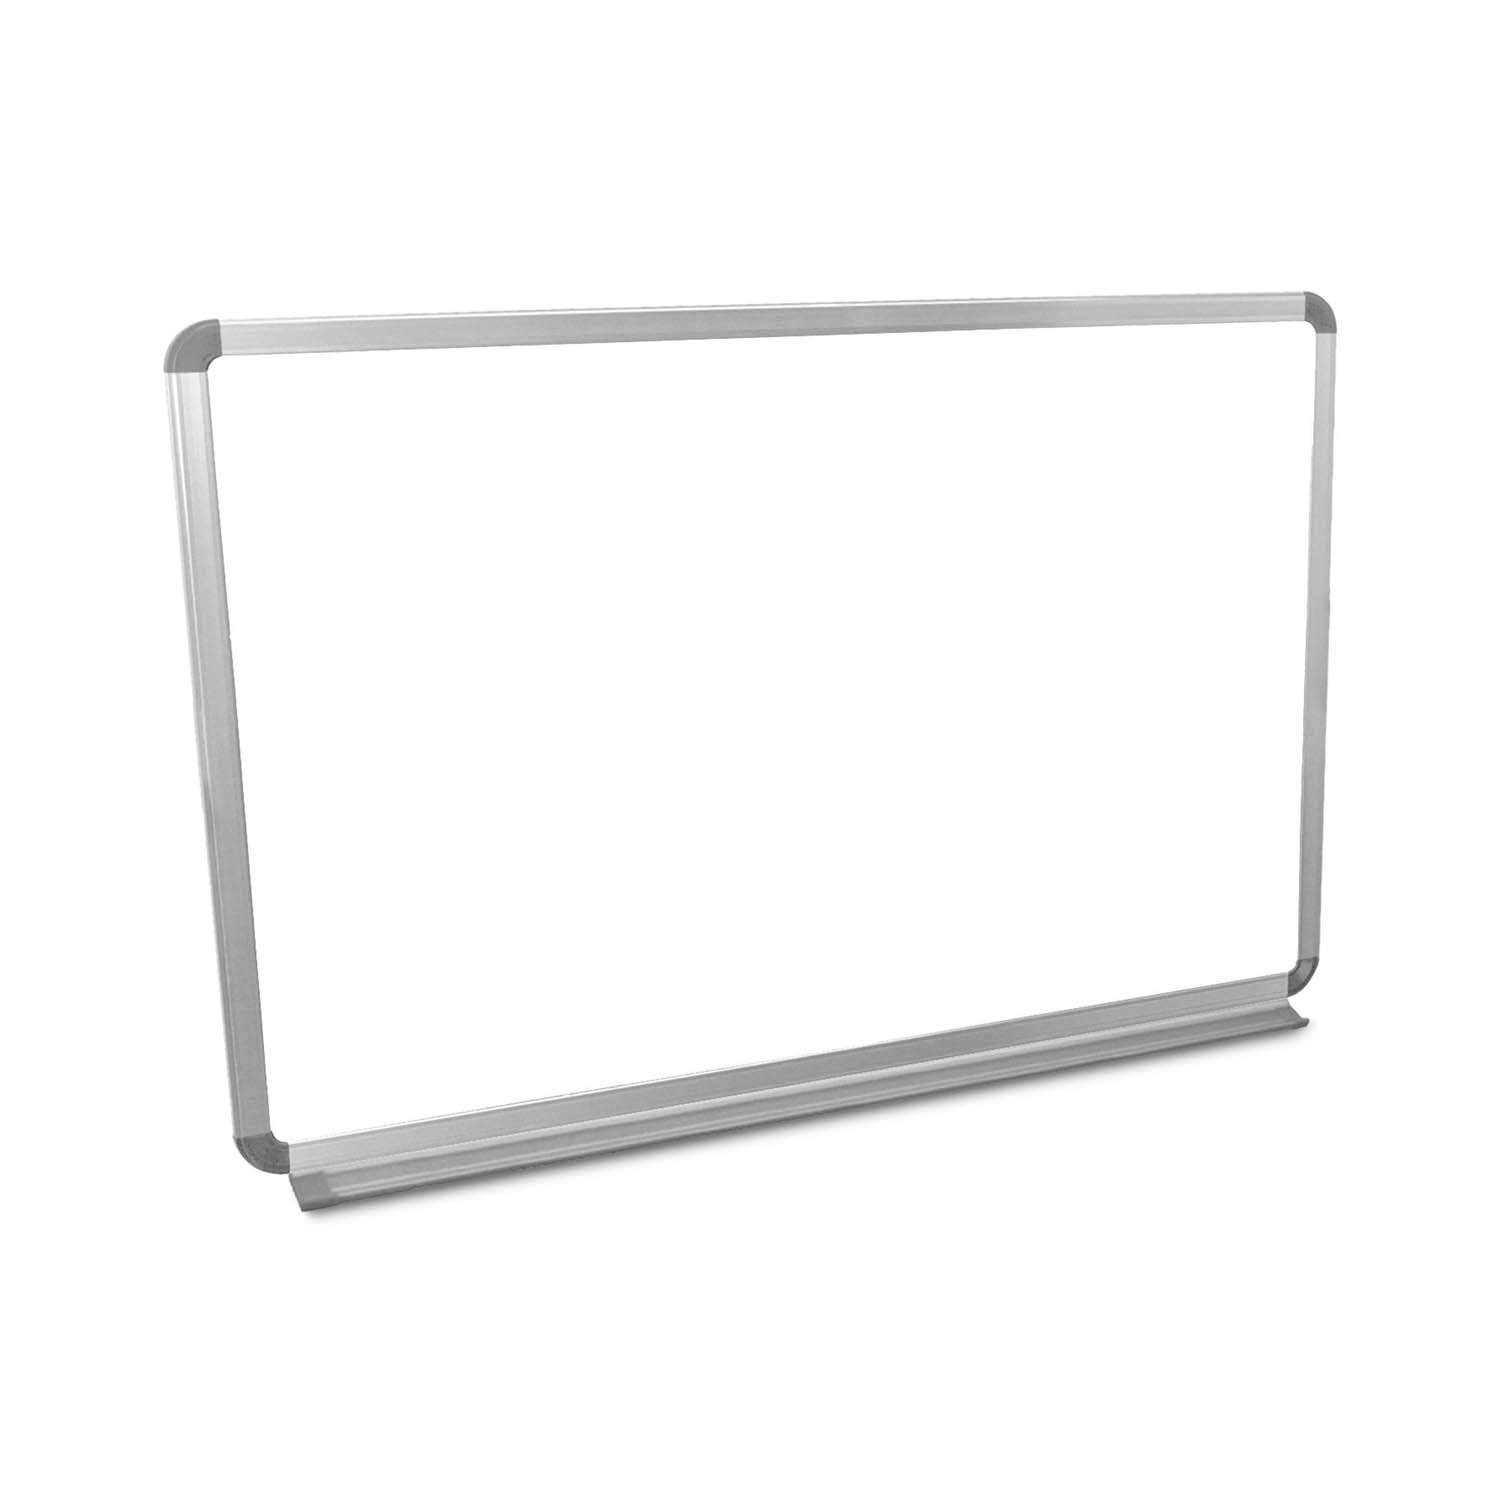 Luxor Home Office School Wall-Mounted Magnetic Dry Erase Whiteboard with Aluminum Frame - 36''W x 24''H by Luxor/H.Wilson